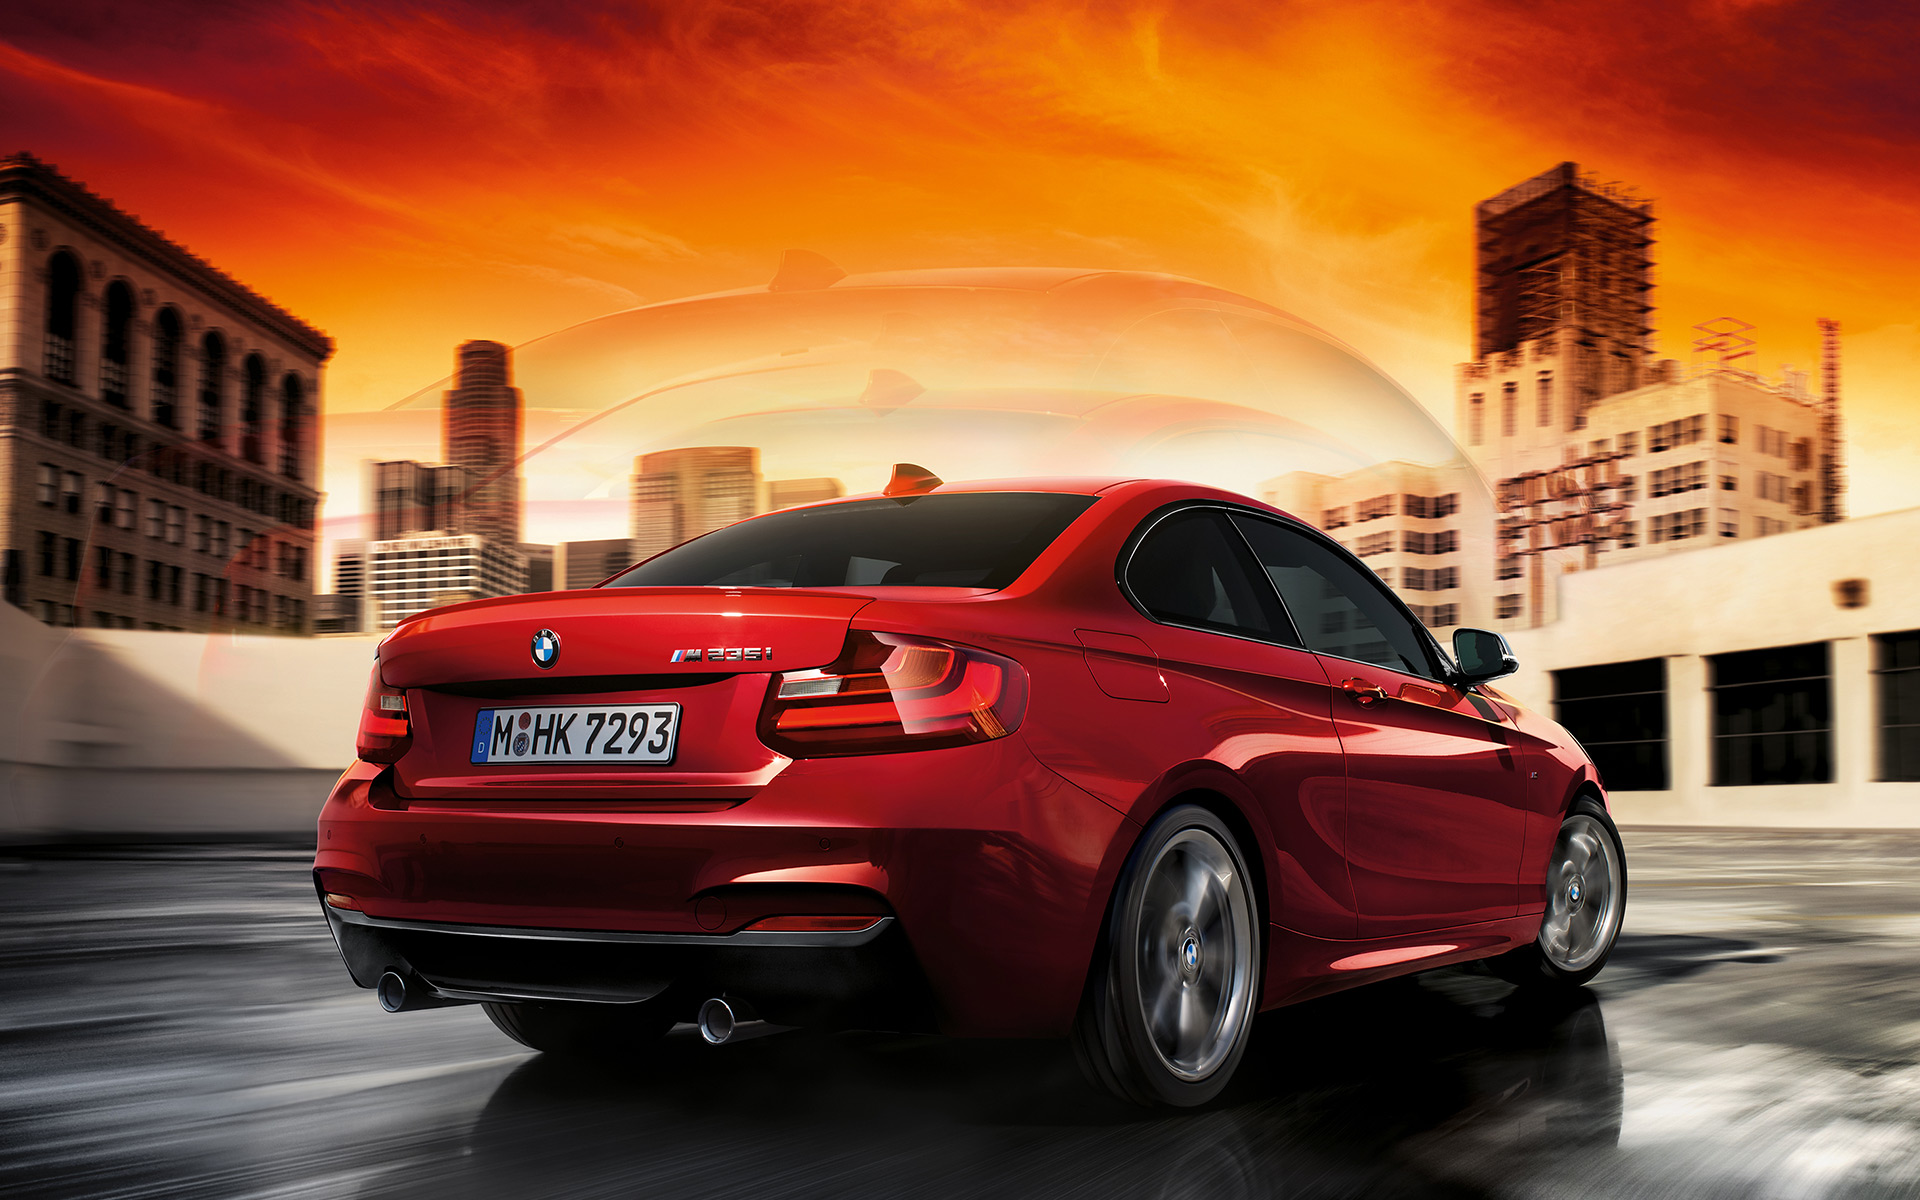 2_Series_Coupe-Wallpaper-20